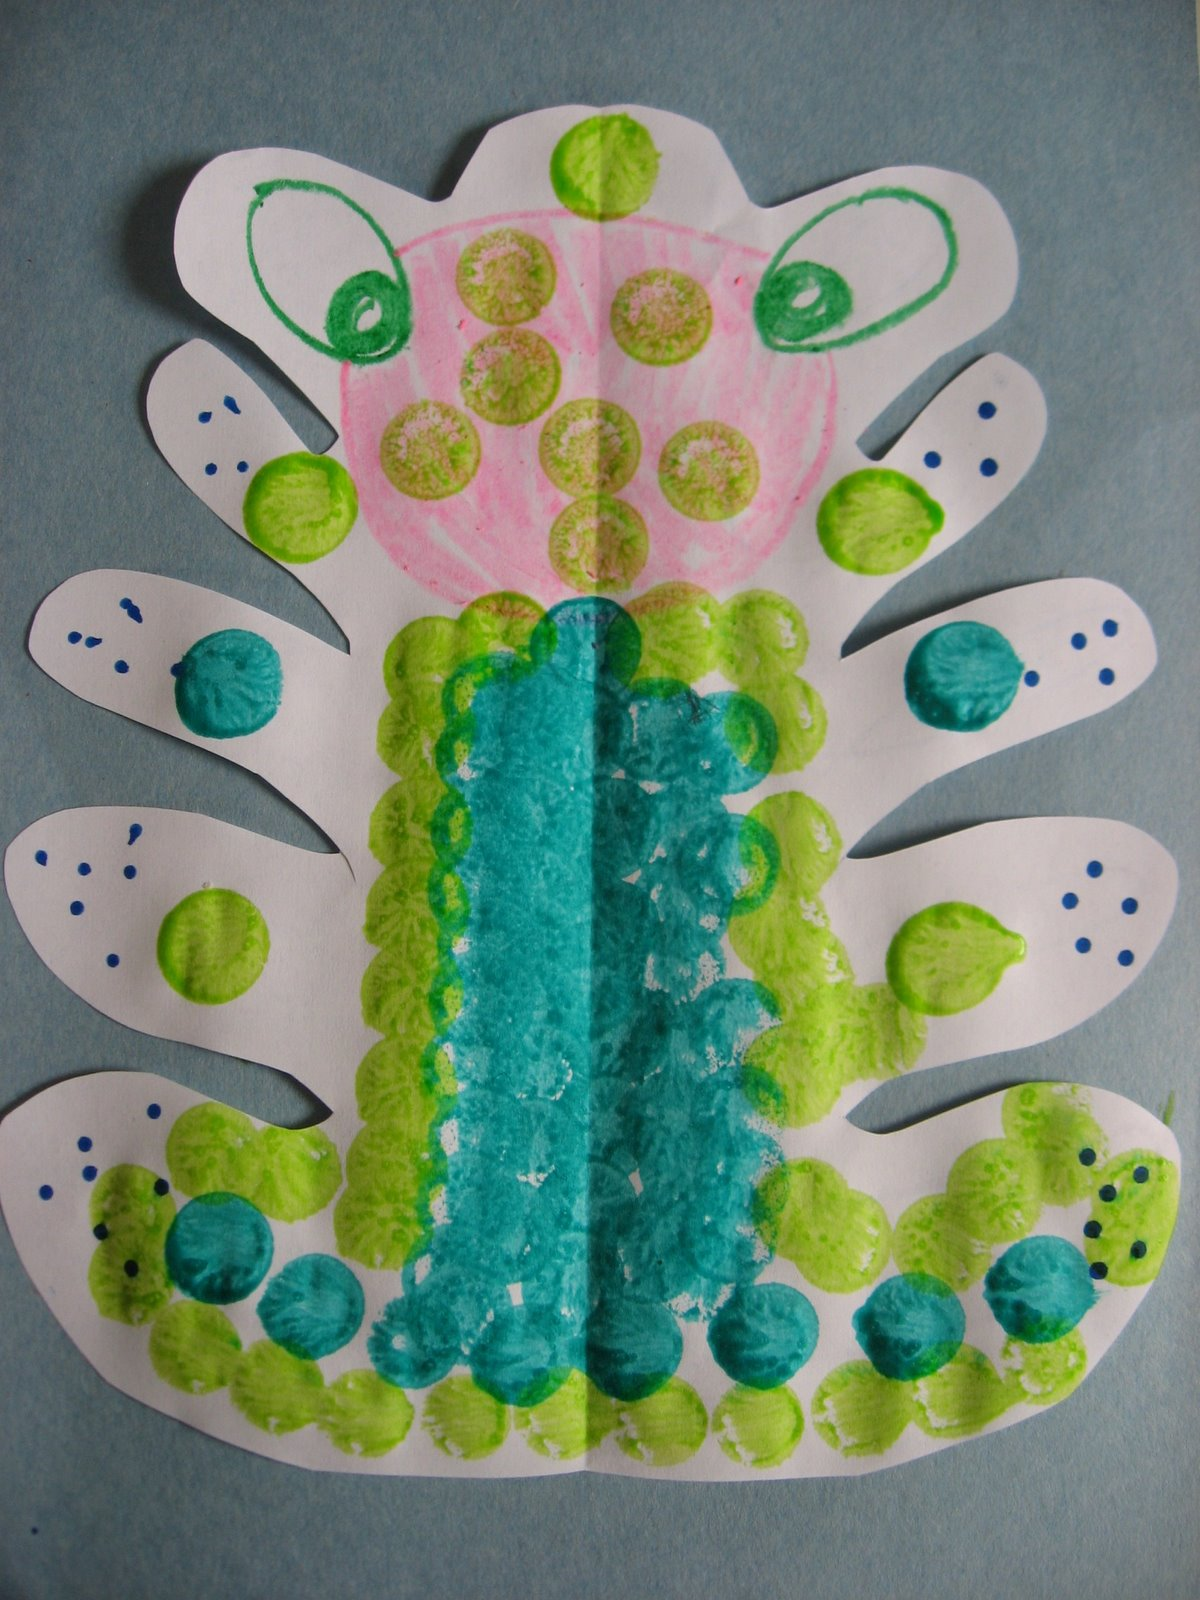 Mzteachuh nothing but spring arts and crafts for Bugs arts and crafts